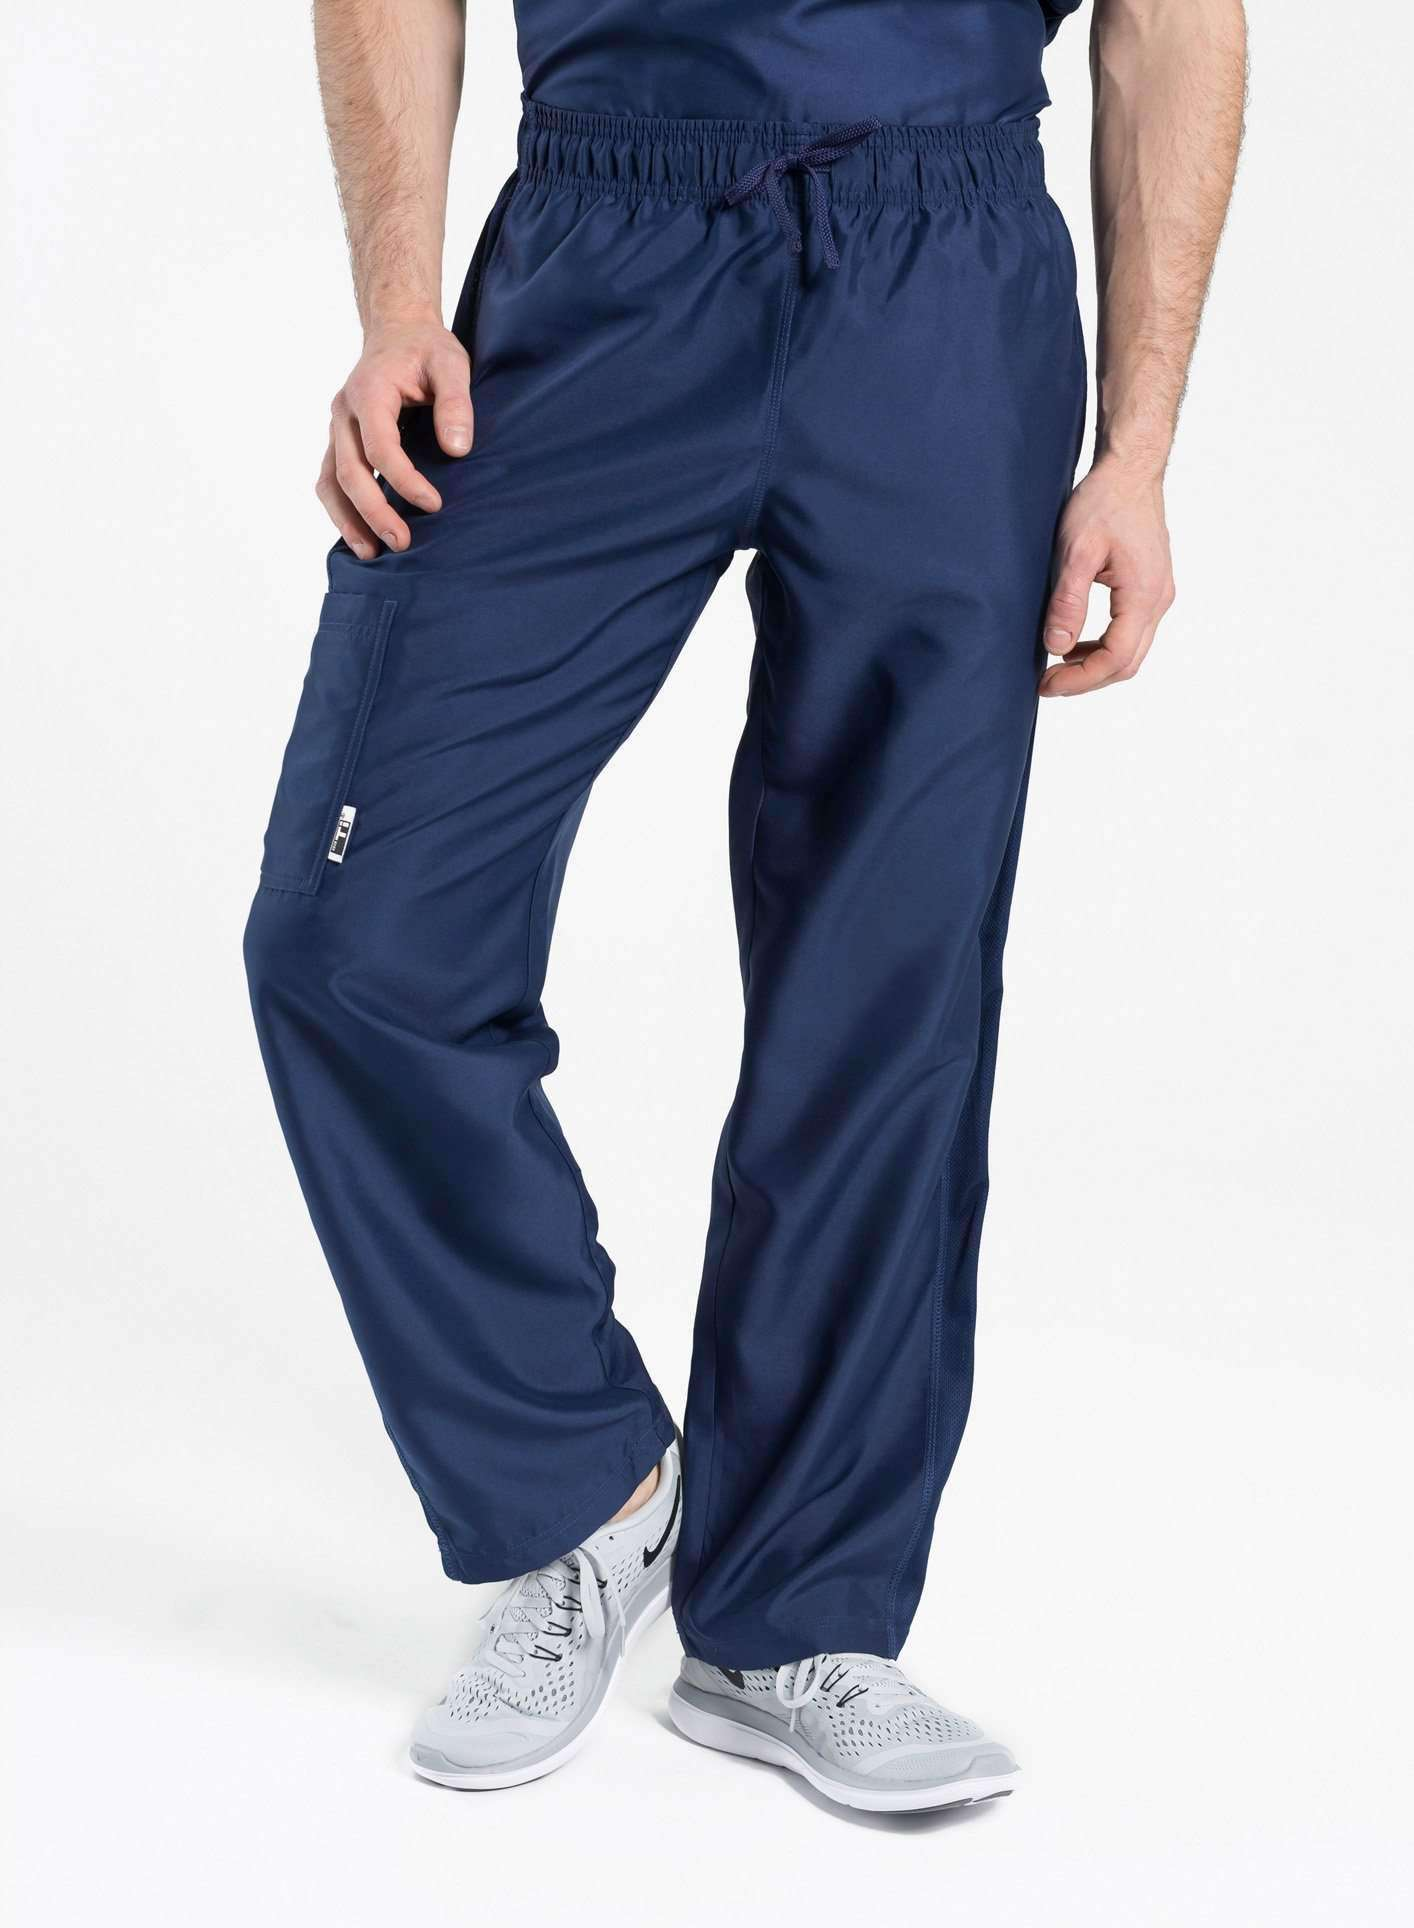 mens Elements cargo pocket relaxed fit scrub pants navy blue